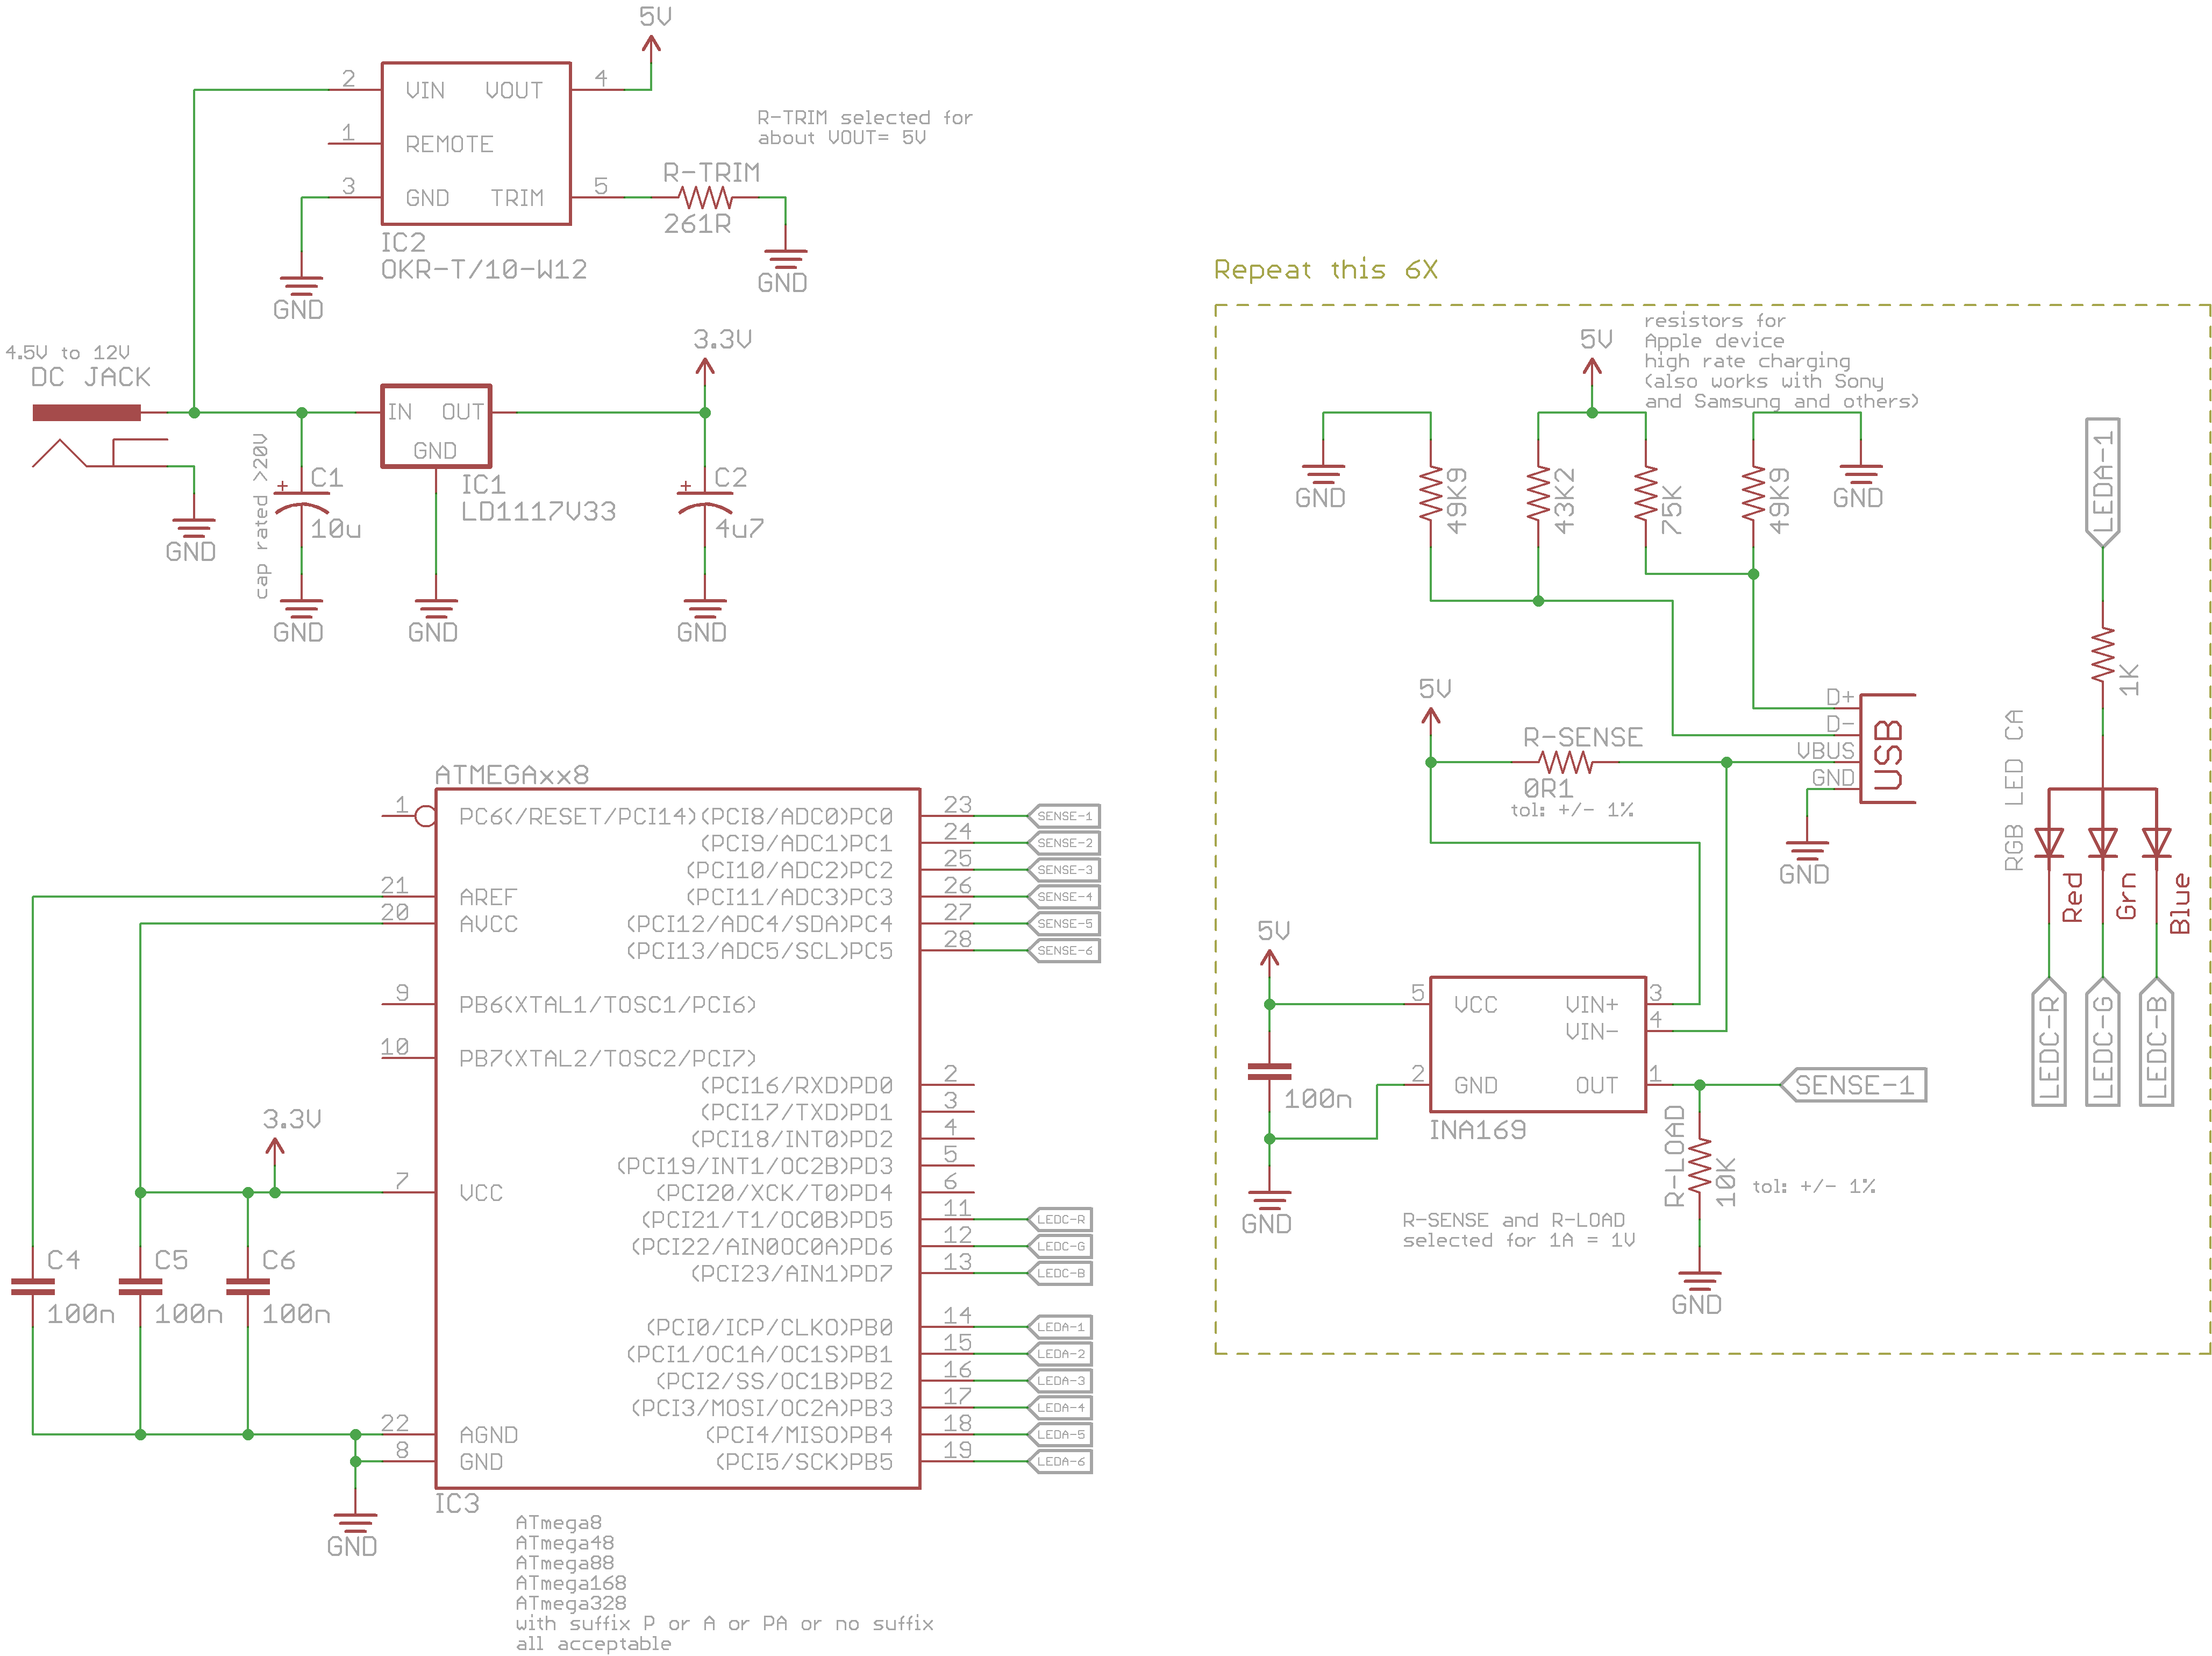 Simple 6x Usb Charger With Current Monitor Eleccelerator Circuit Diagram Here Is The Schematic And Firmware C Code